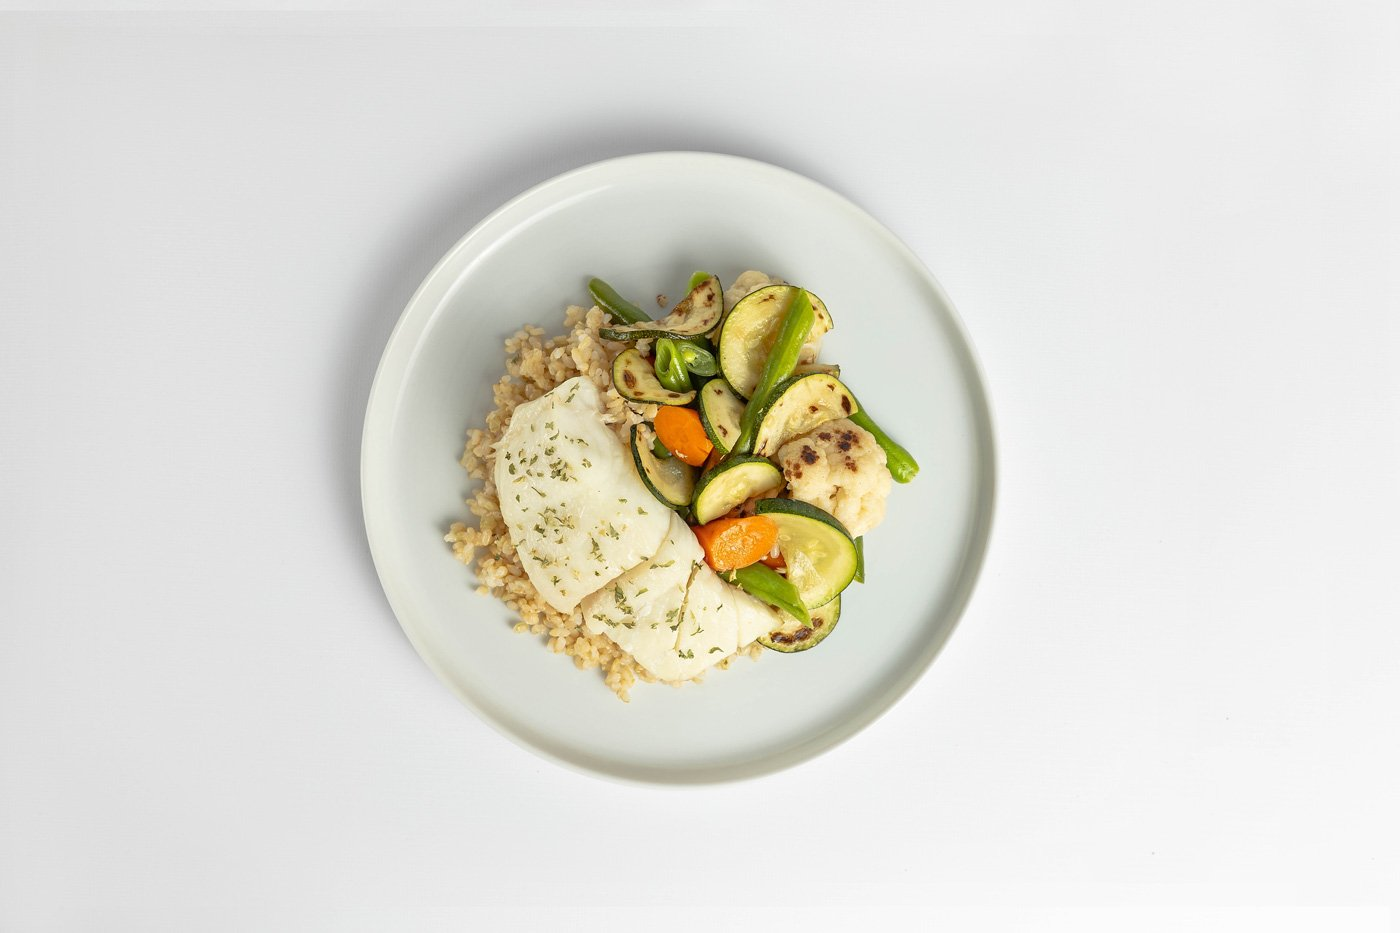 Basa, Brown Rice, Mixed Vegetables Meal Product Image